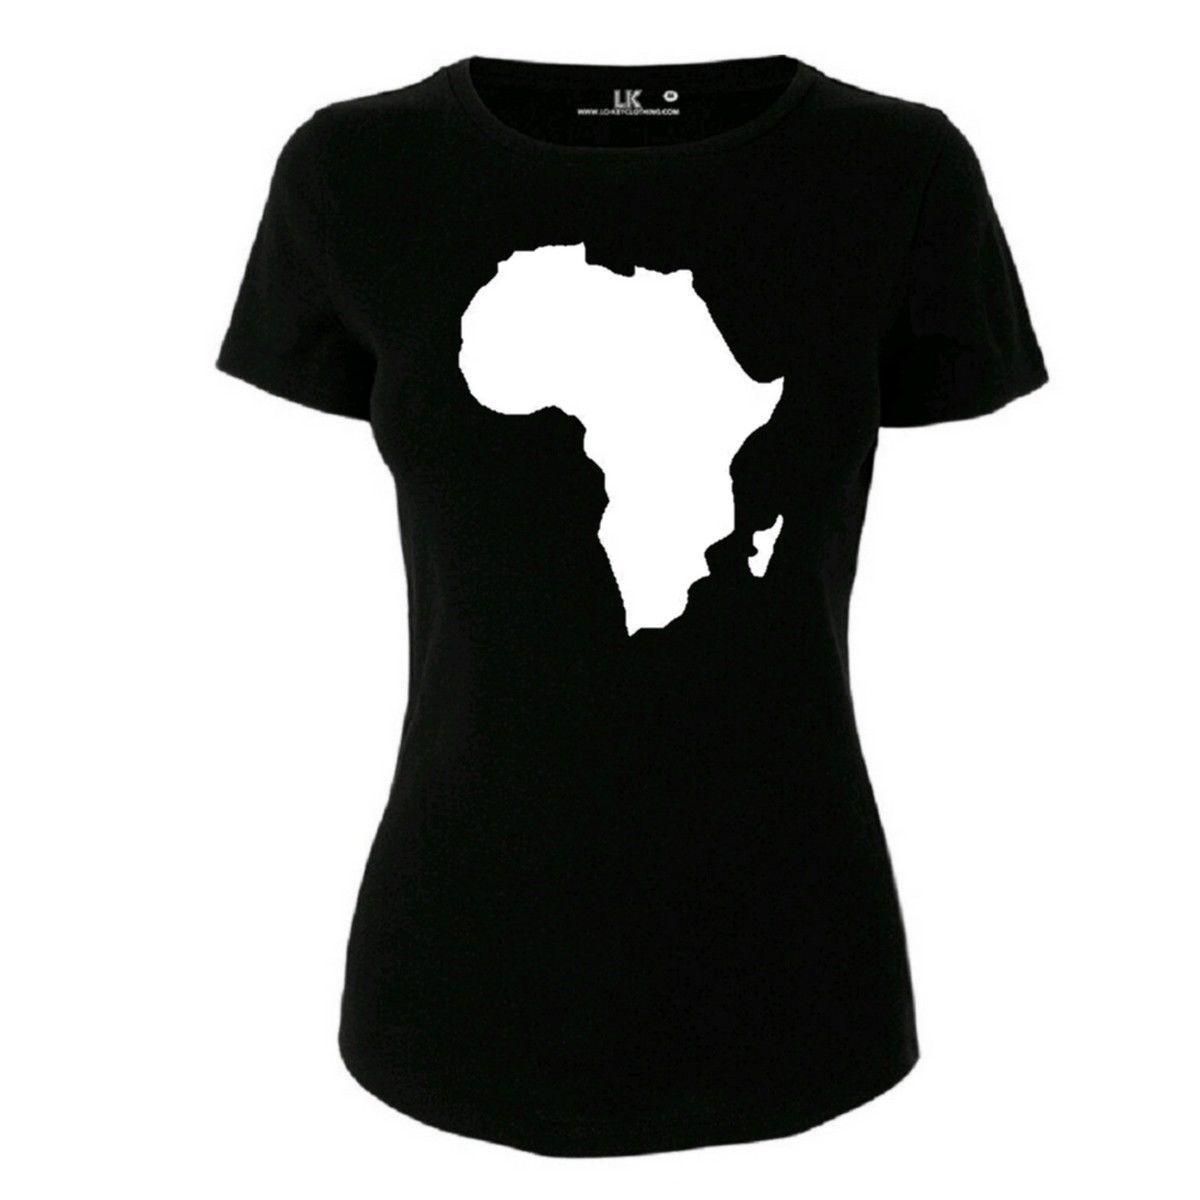 Women's Africa Map TShirt Cute Tee World Continent Urban Top Streetwear 2019 Summer Hiphop Harajuku Brand